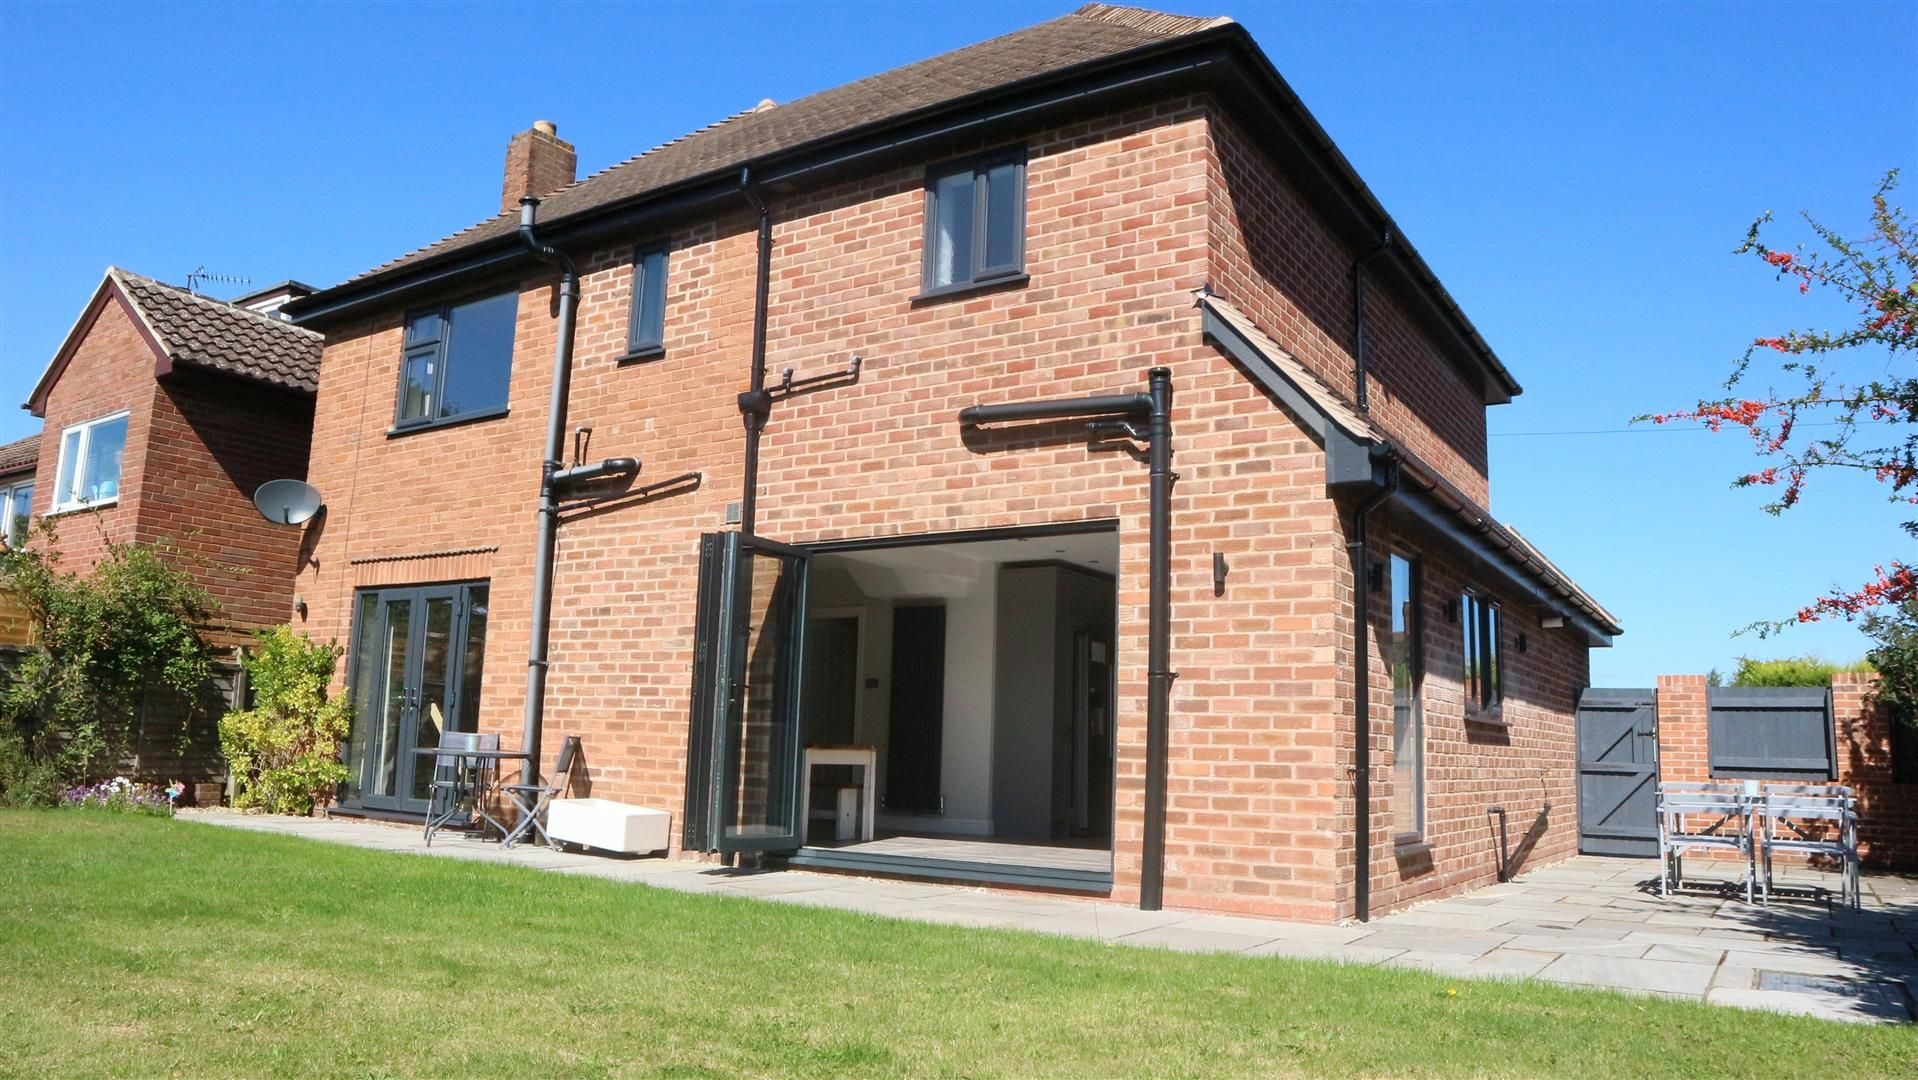 4 bed detached for sale in Norton 19